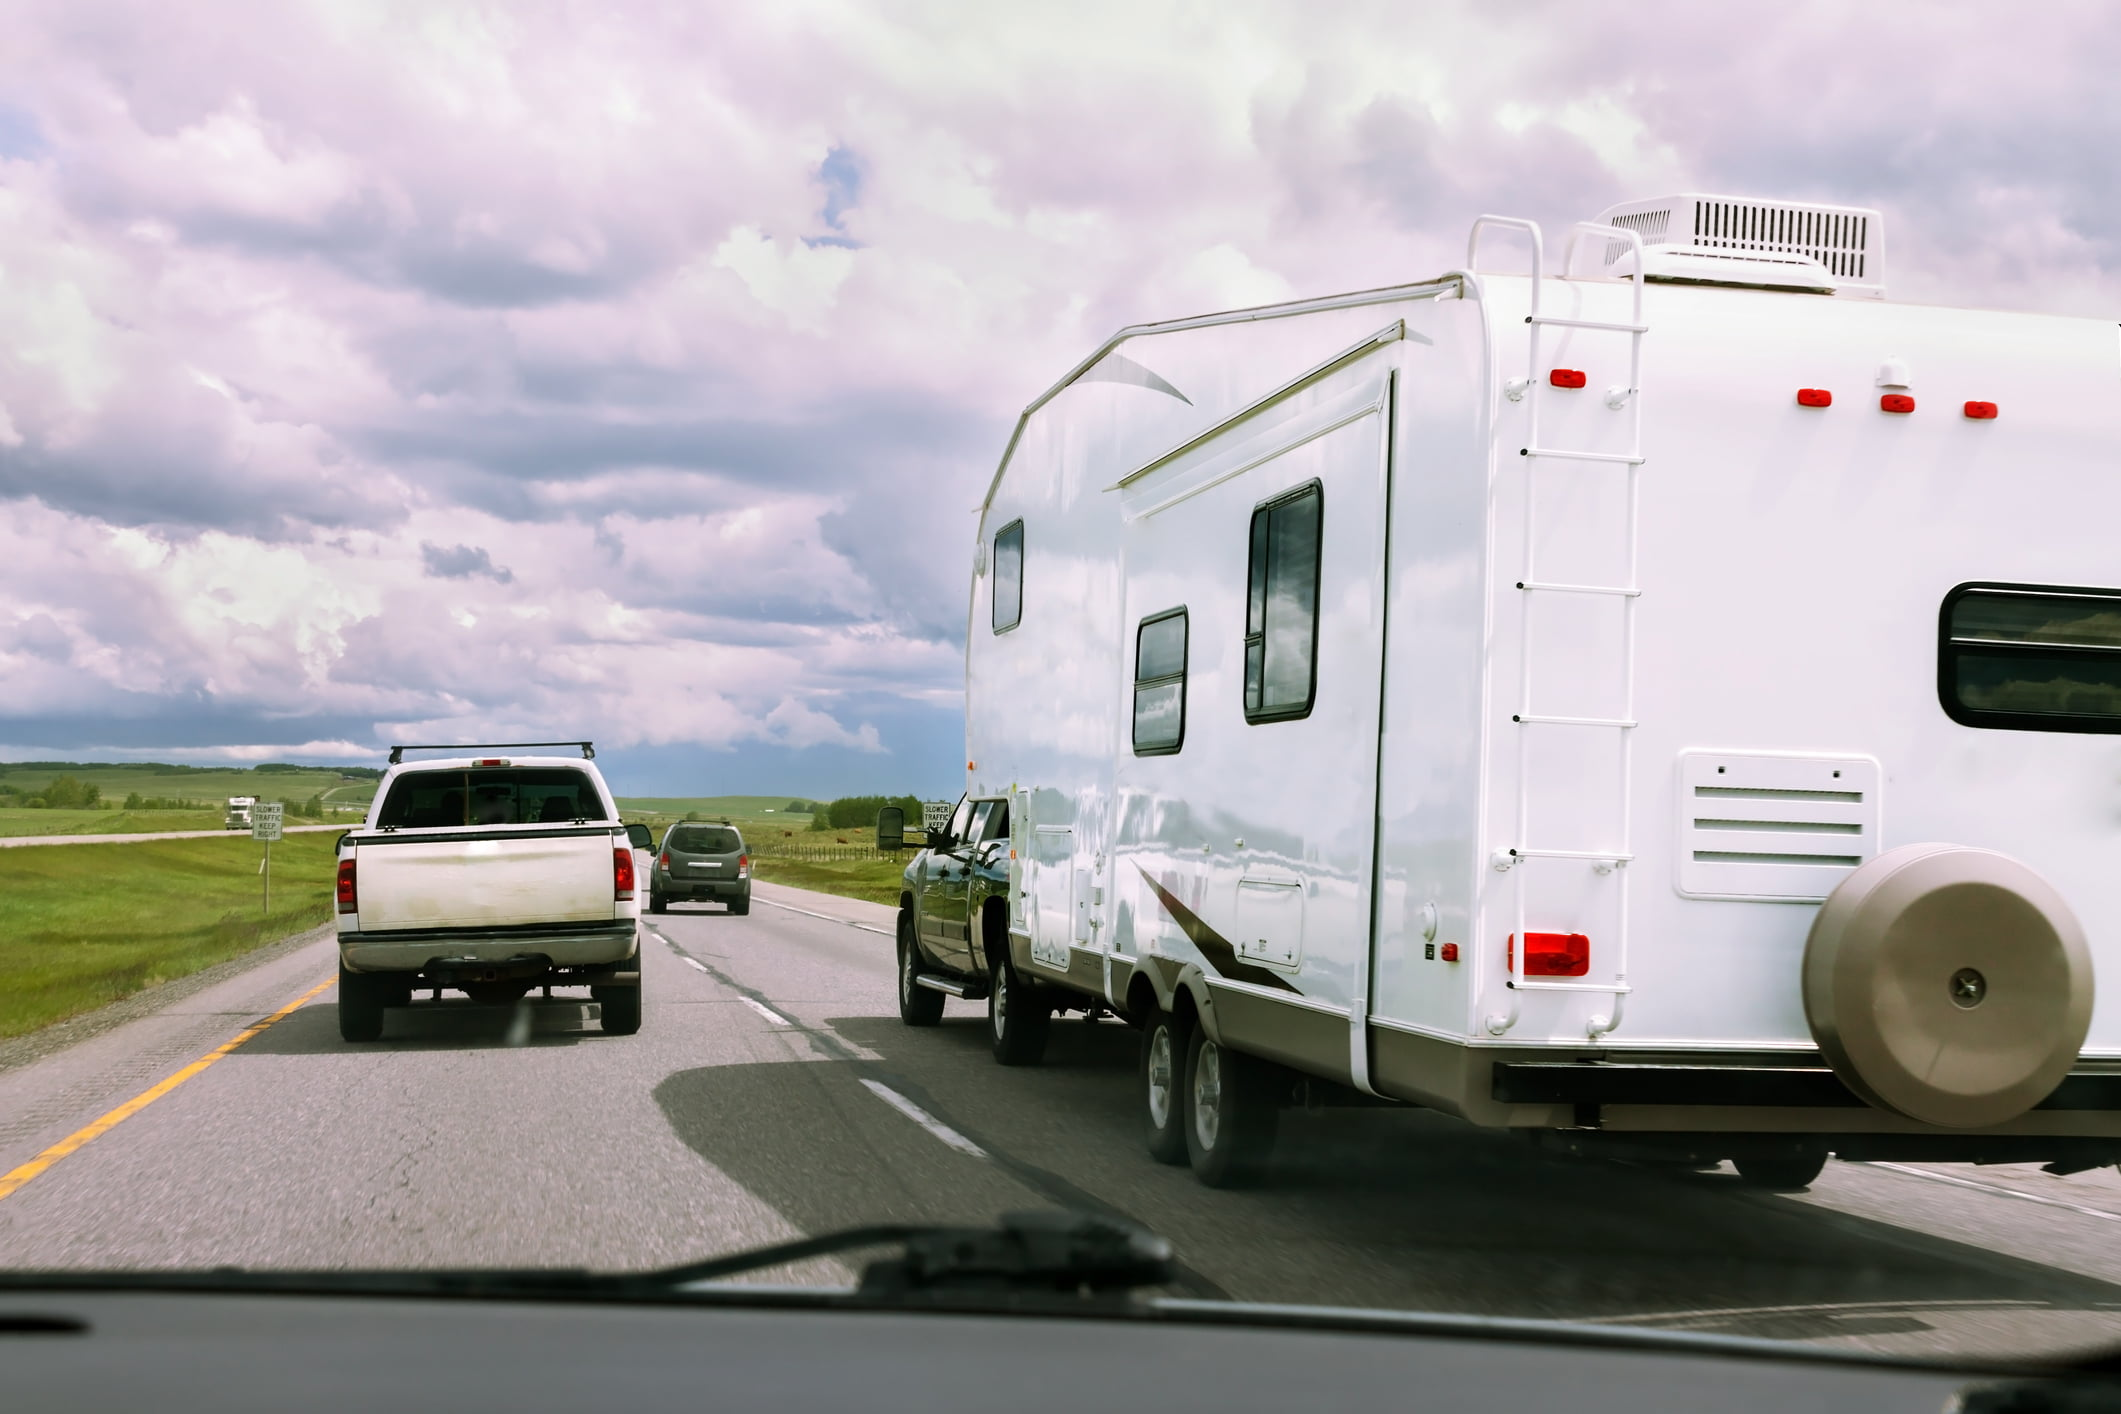 RV being pulled by truck and other vehicles on road with cloudy skies on sunny day.